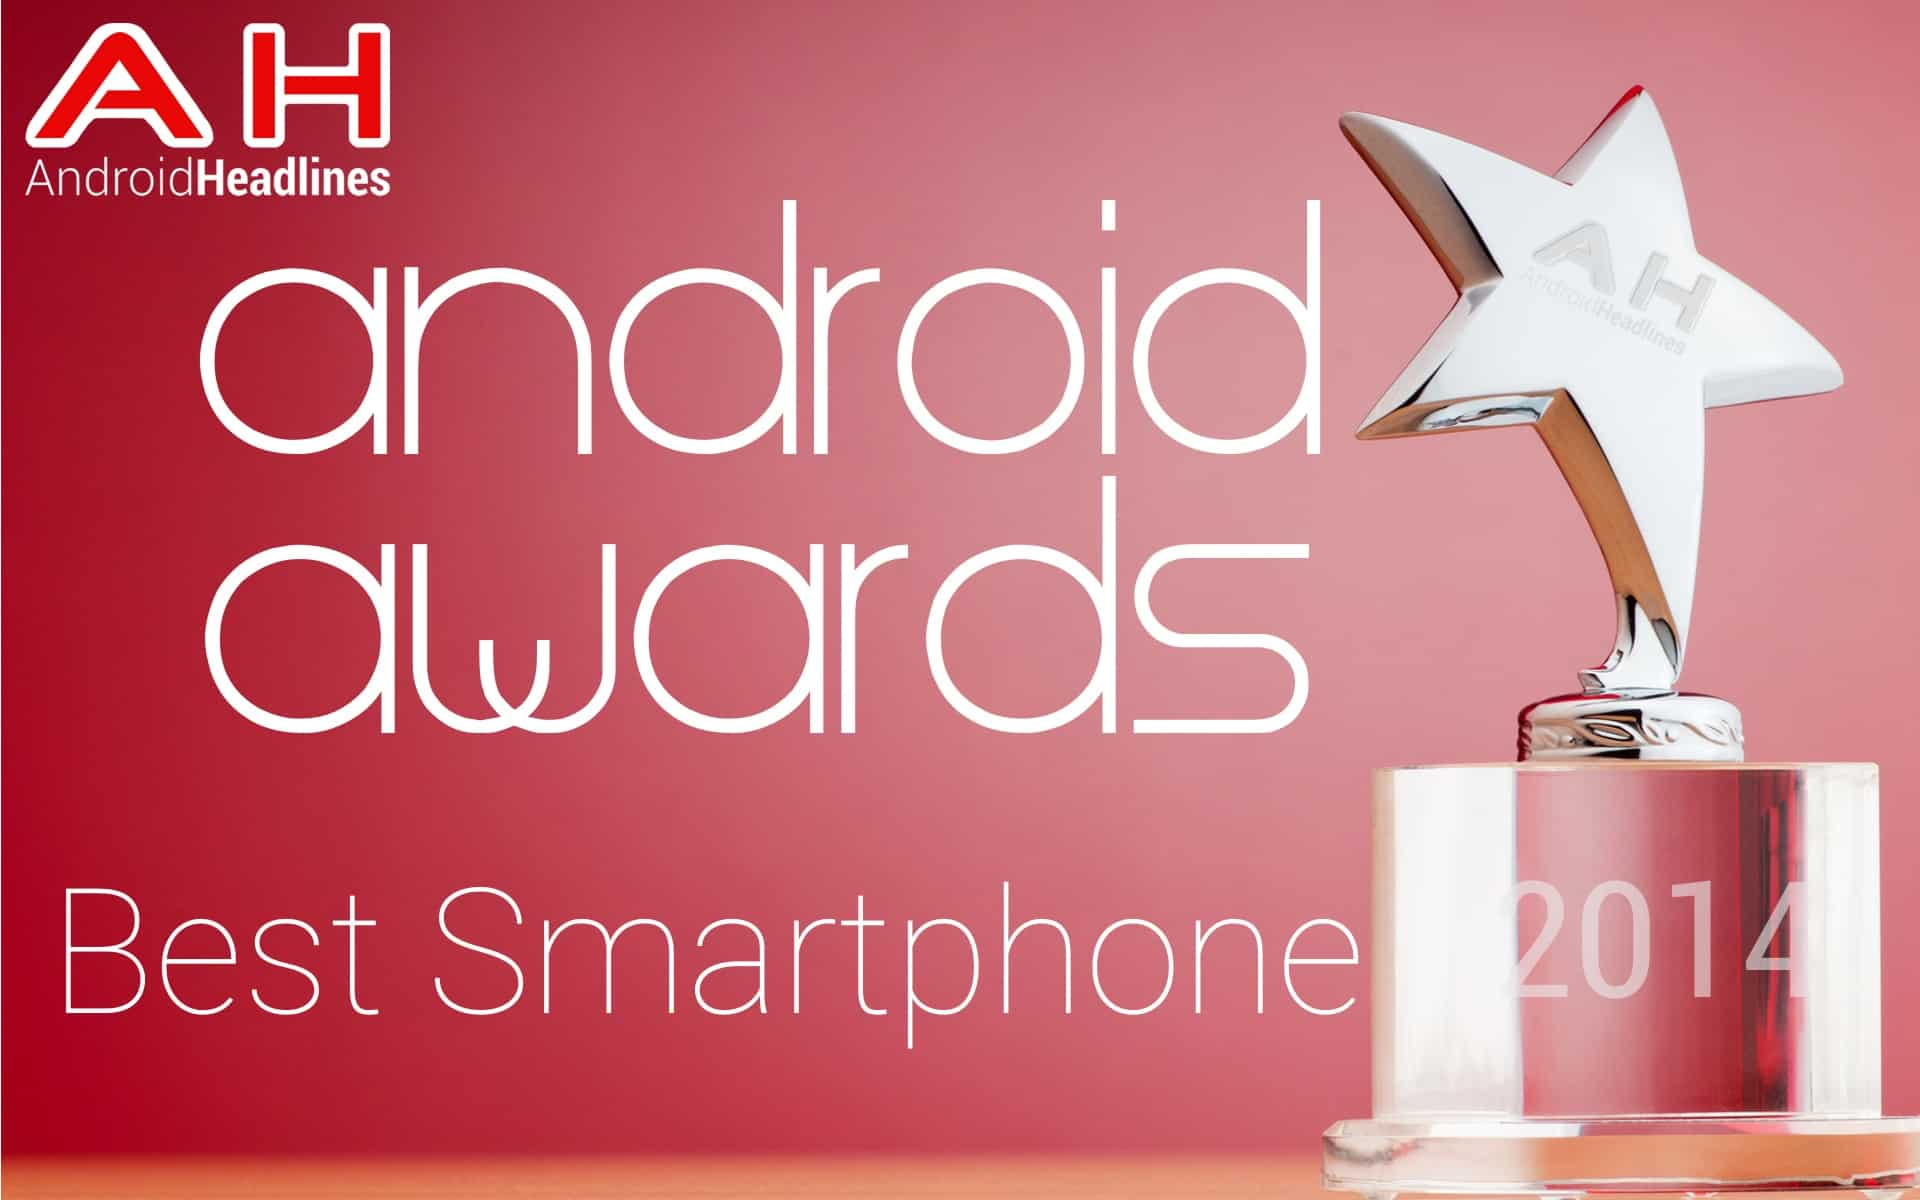 AH Awards 2014 Best Smartphone of the year